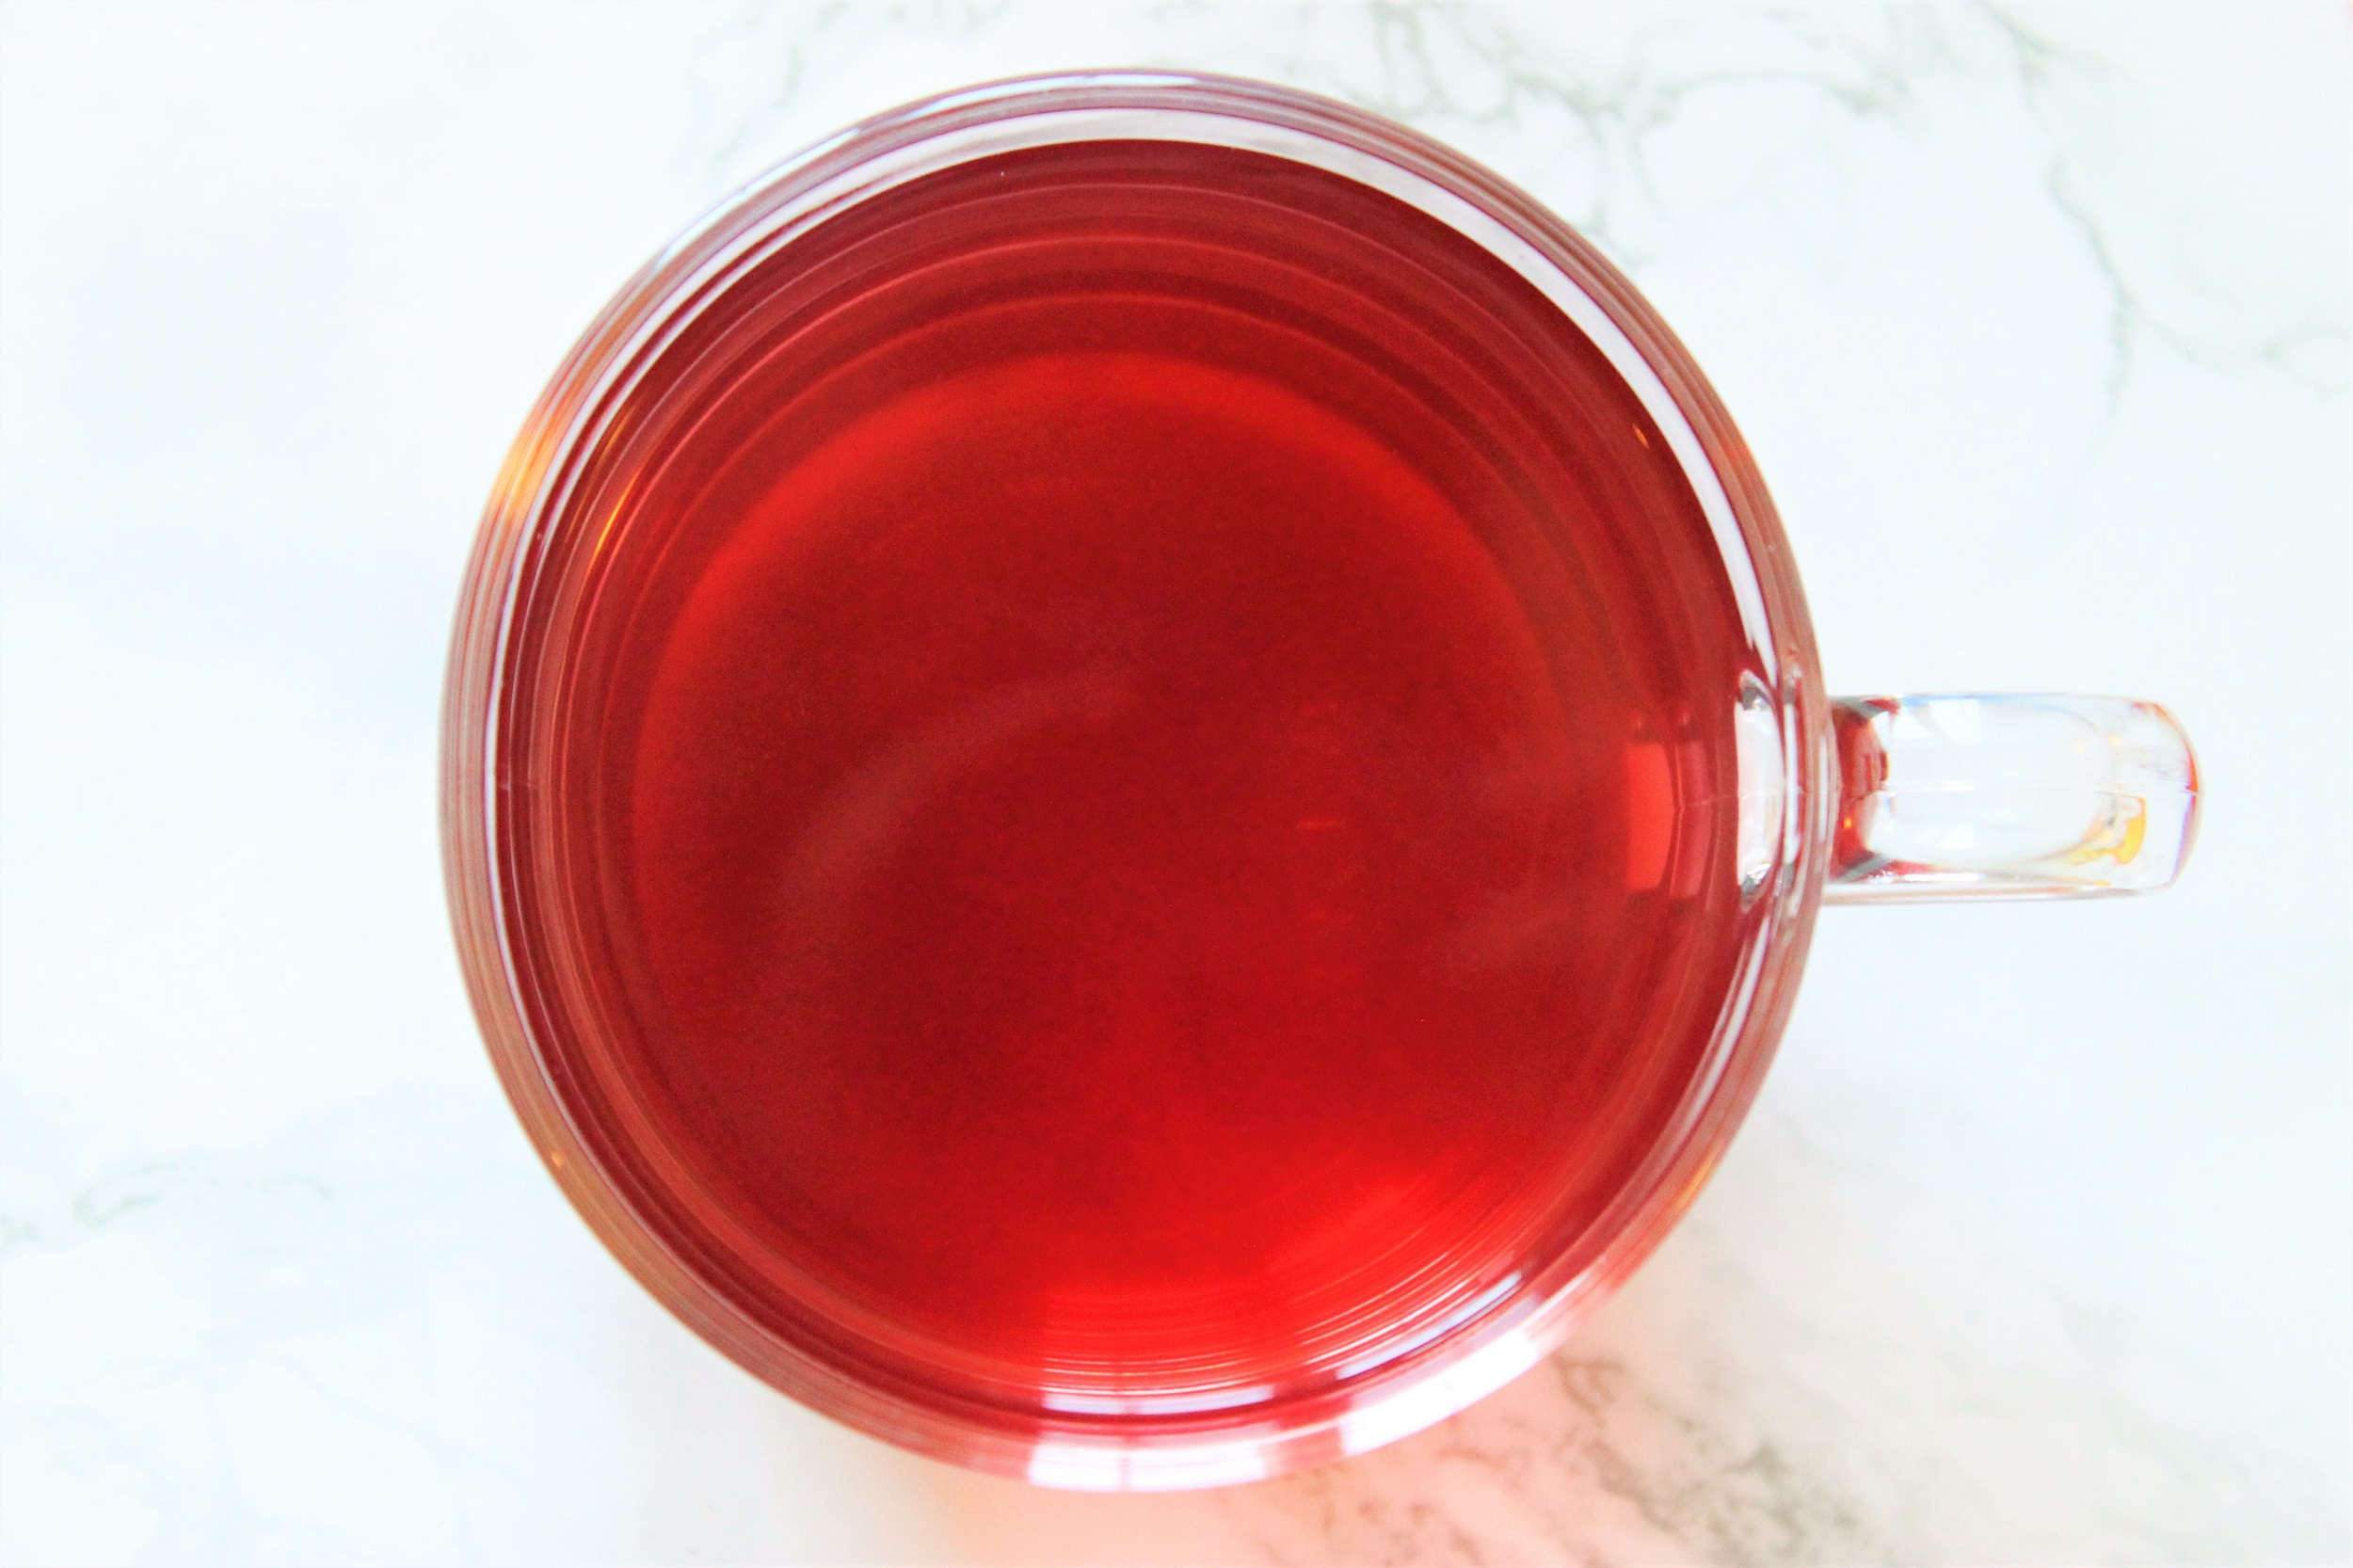 twinings red tea cup